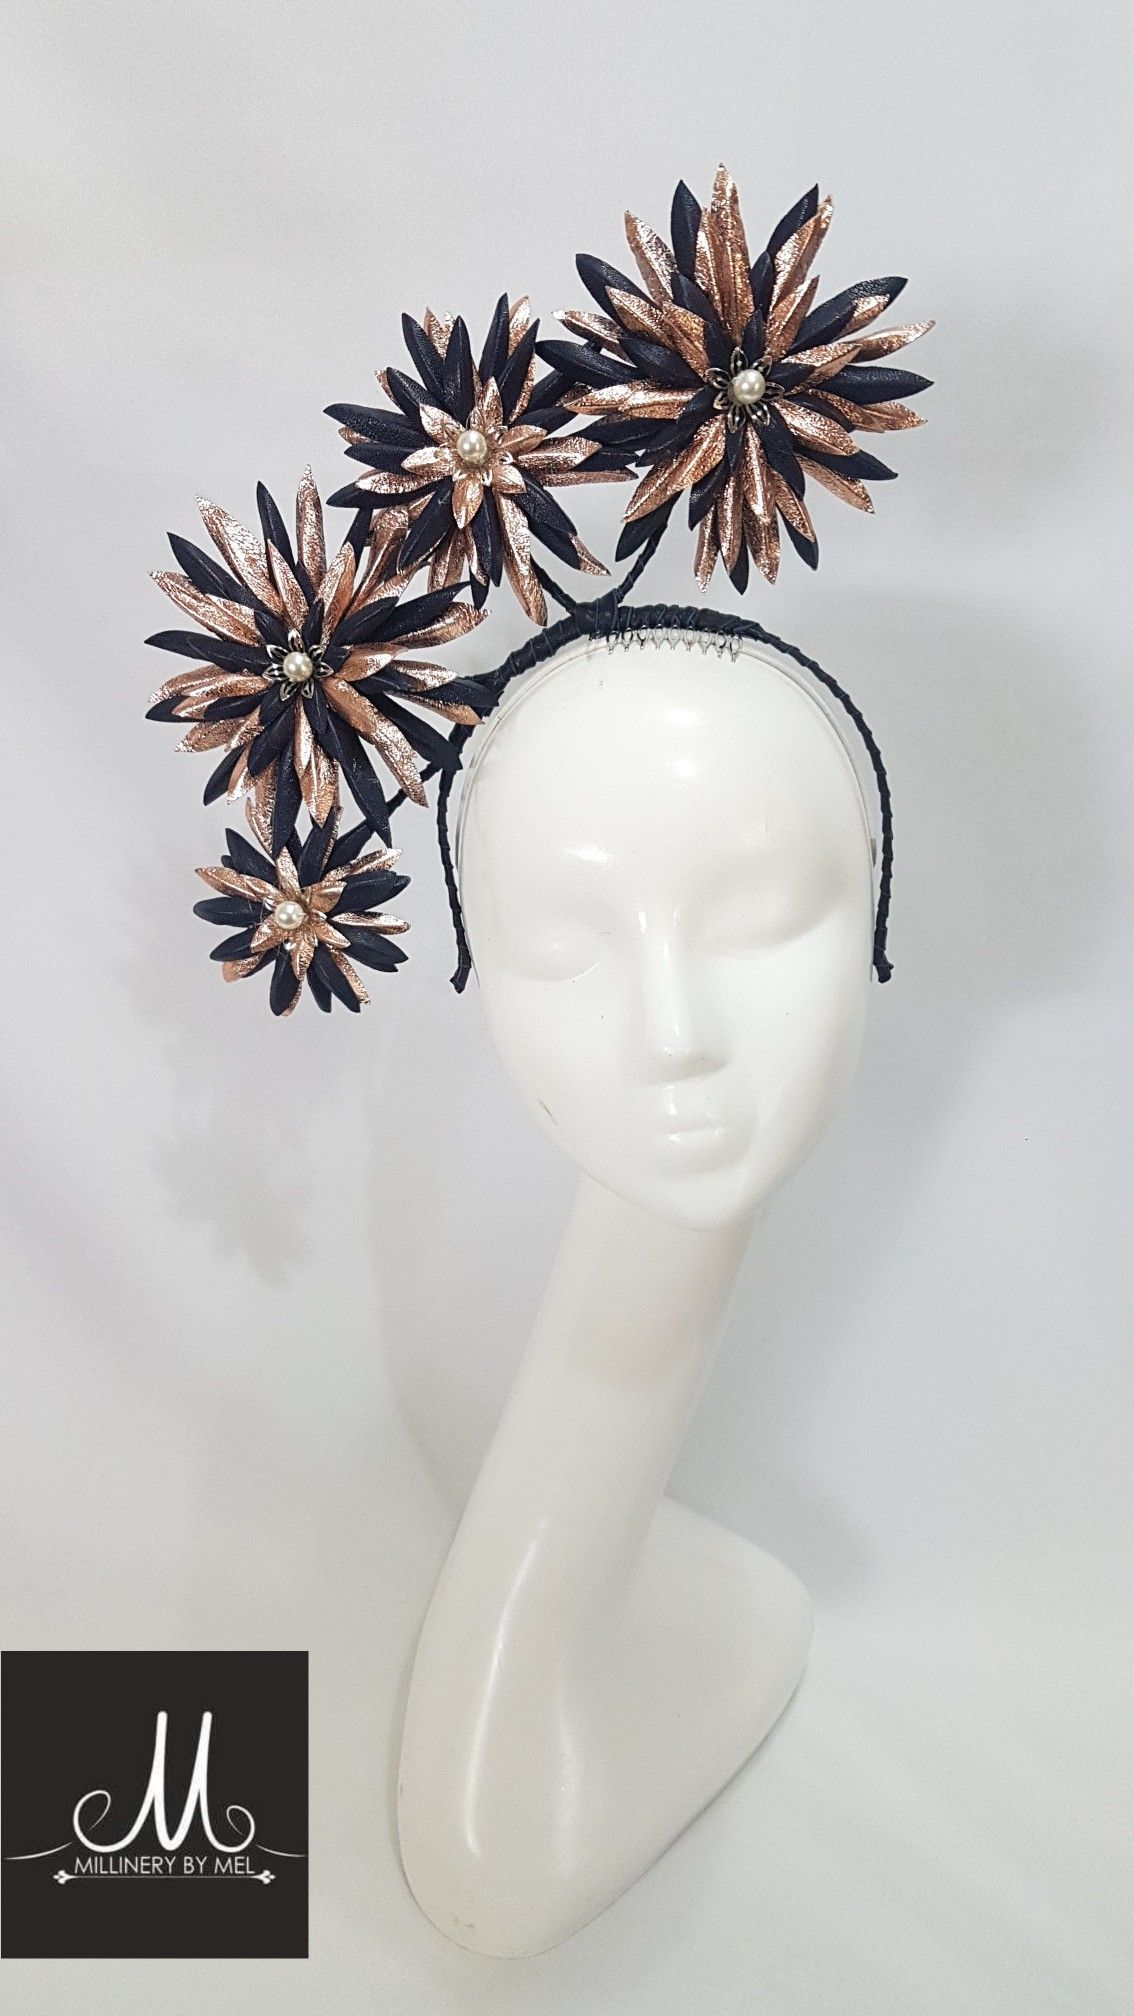 626cc5acc11 Millinery By Mel Navy and rose gold leather fascinator  millinerybymel  www.millinerybymel.com.au